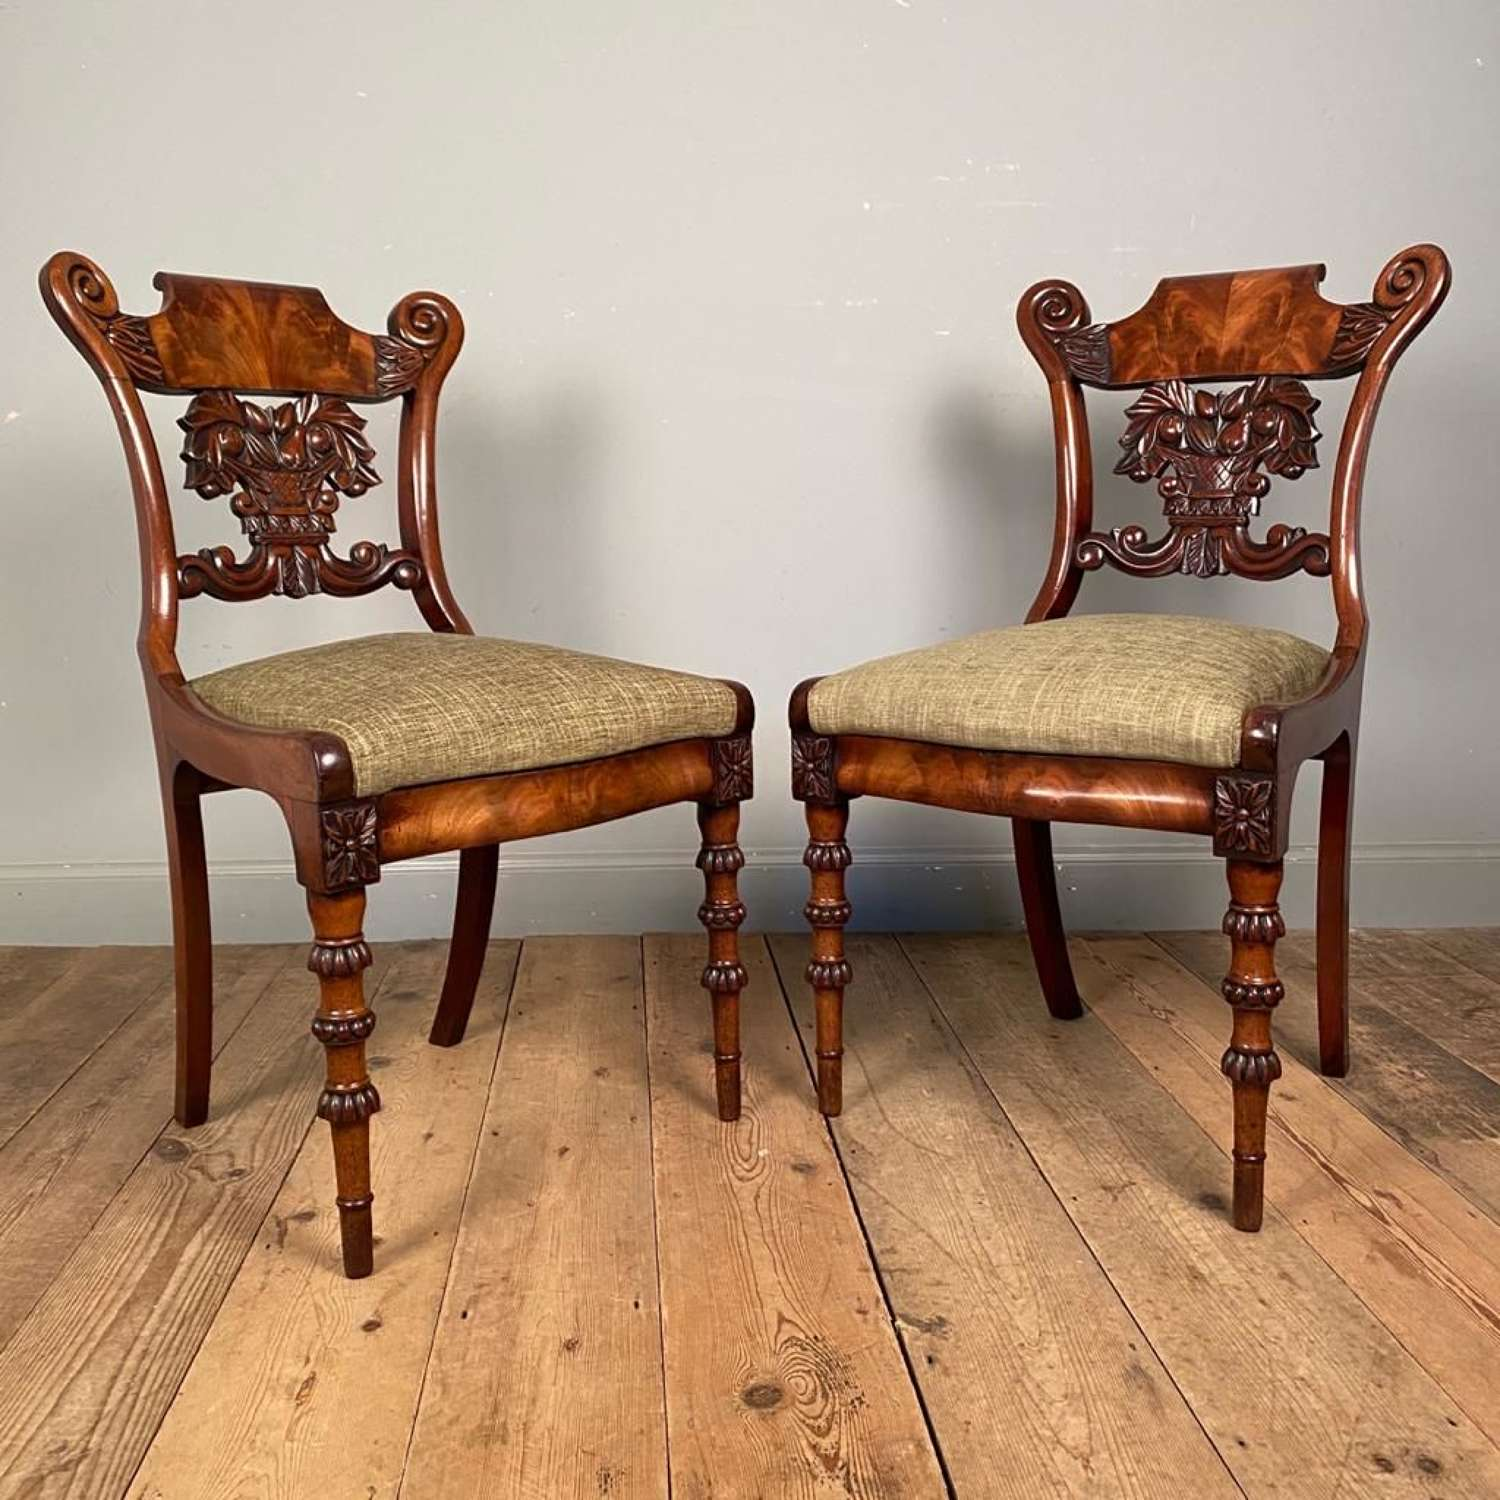 Stunning Pair of Mahogany Side Chairs